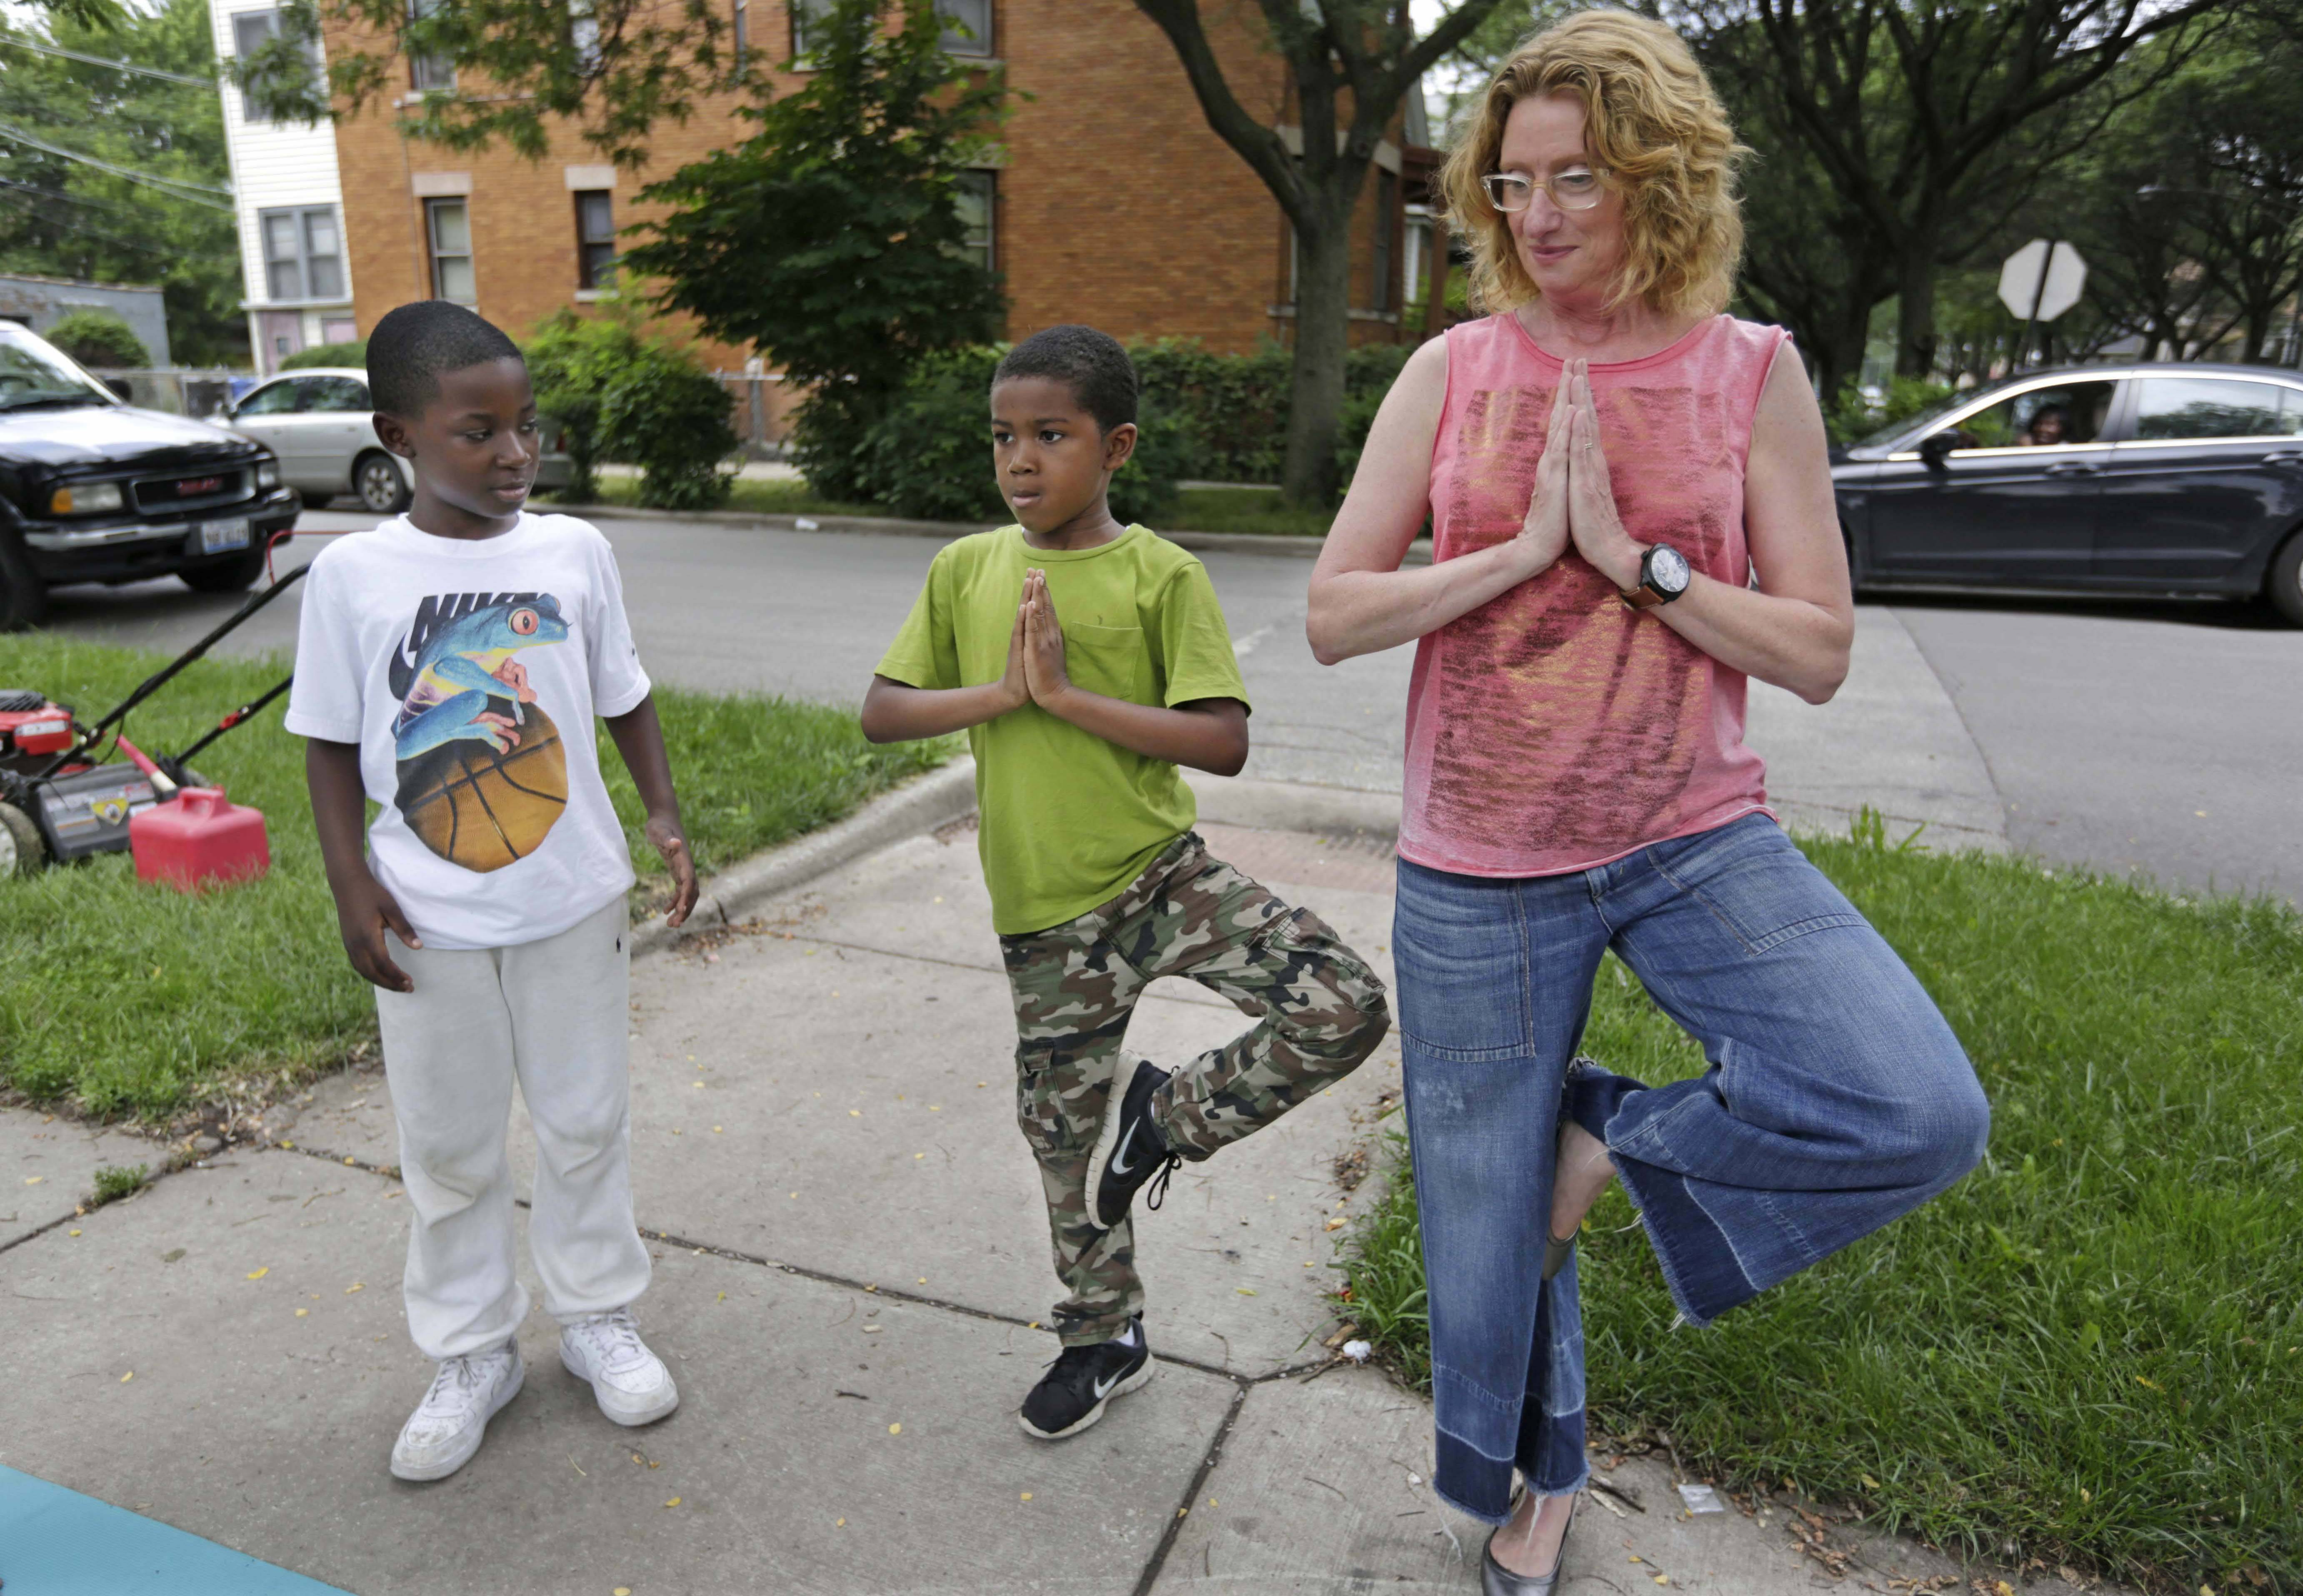 'I Grow Chicago' co-founder Robbin Carroll, right, practices with Sanchez Yerger, left, and Brendan Johnson, before they take part in a yoga class on the often violent streets of Chicago's Englewood neighborhood in Chicago. The hope is that yoga's meditative focus will help cooler heads prevail the next time violence or vengeance looms.